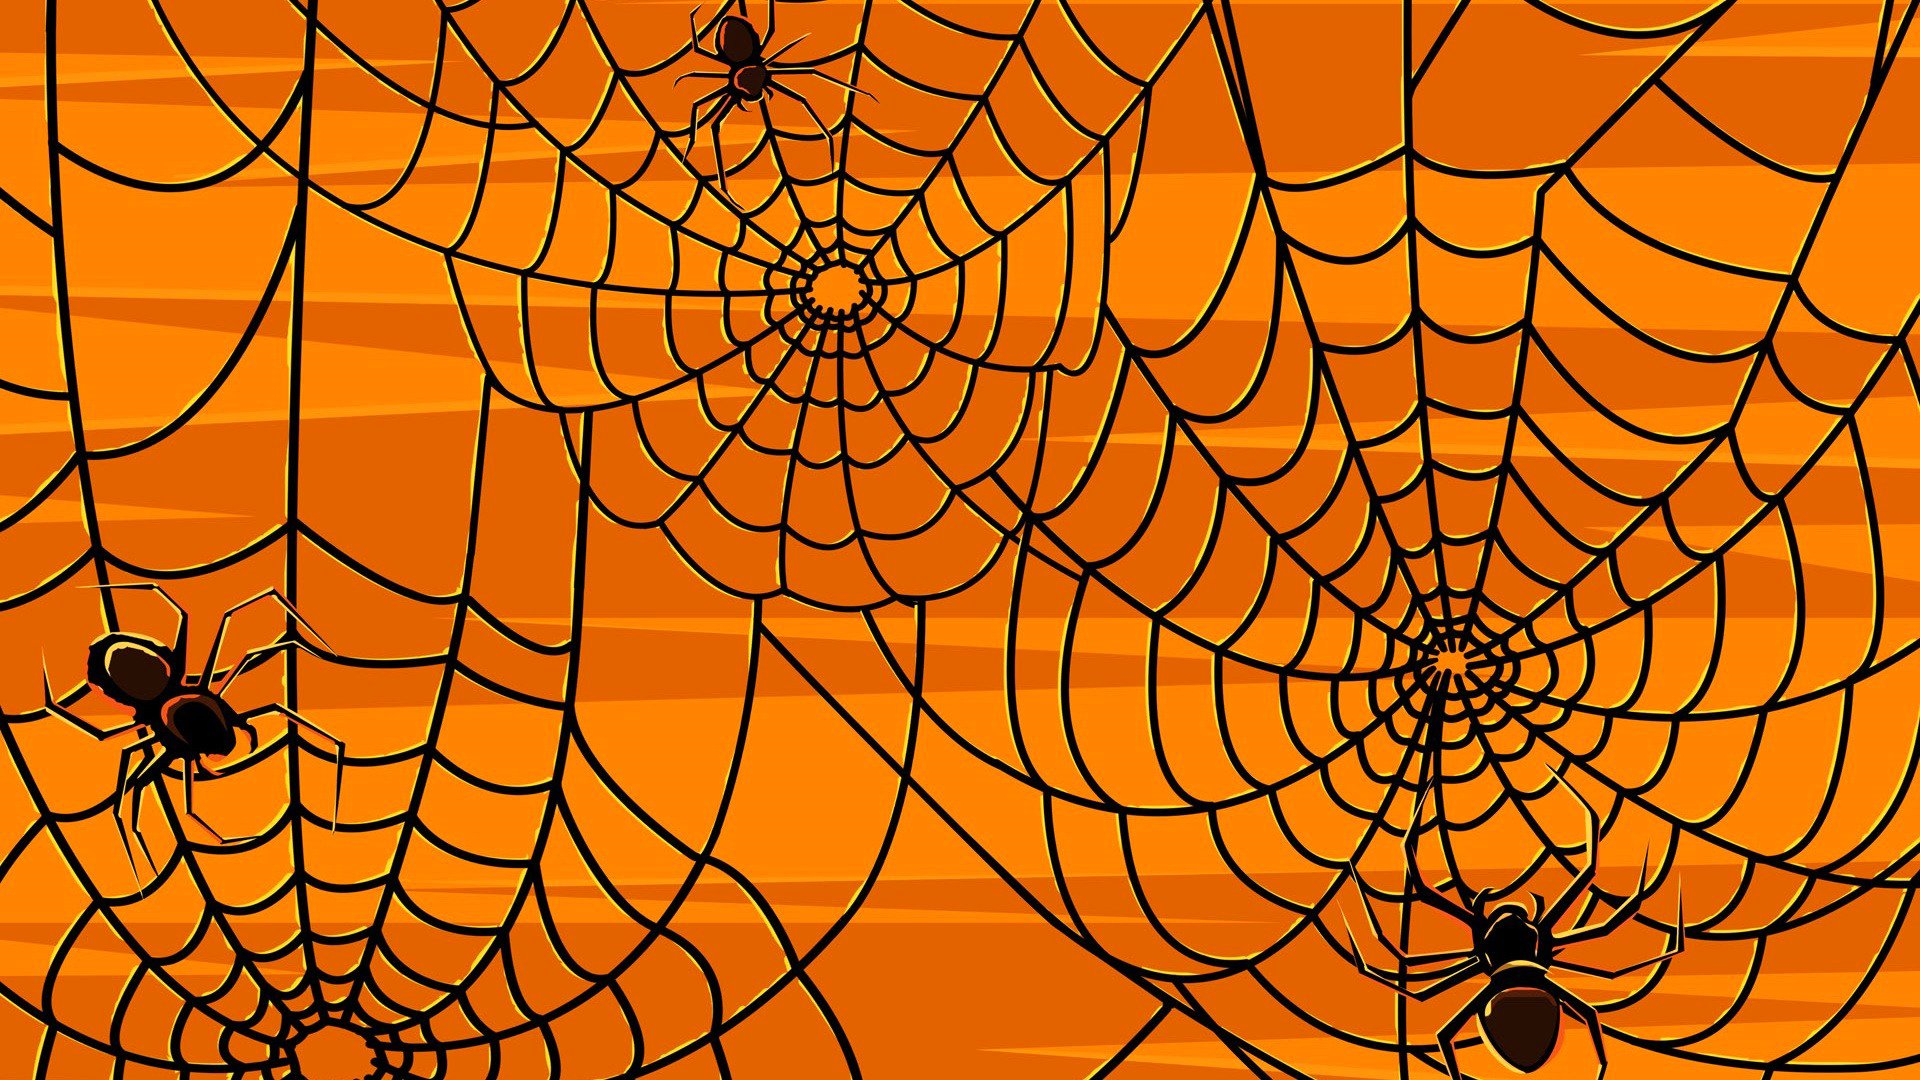 Spider Web Background Stock Photos and Images